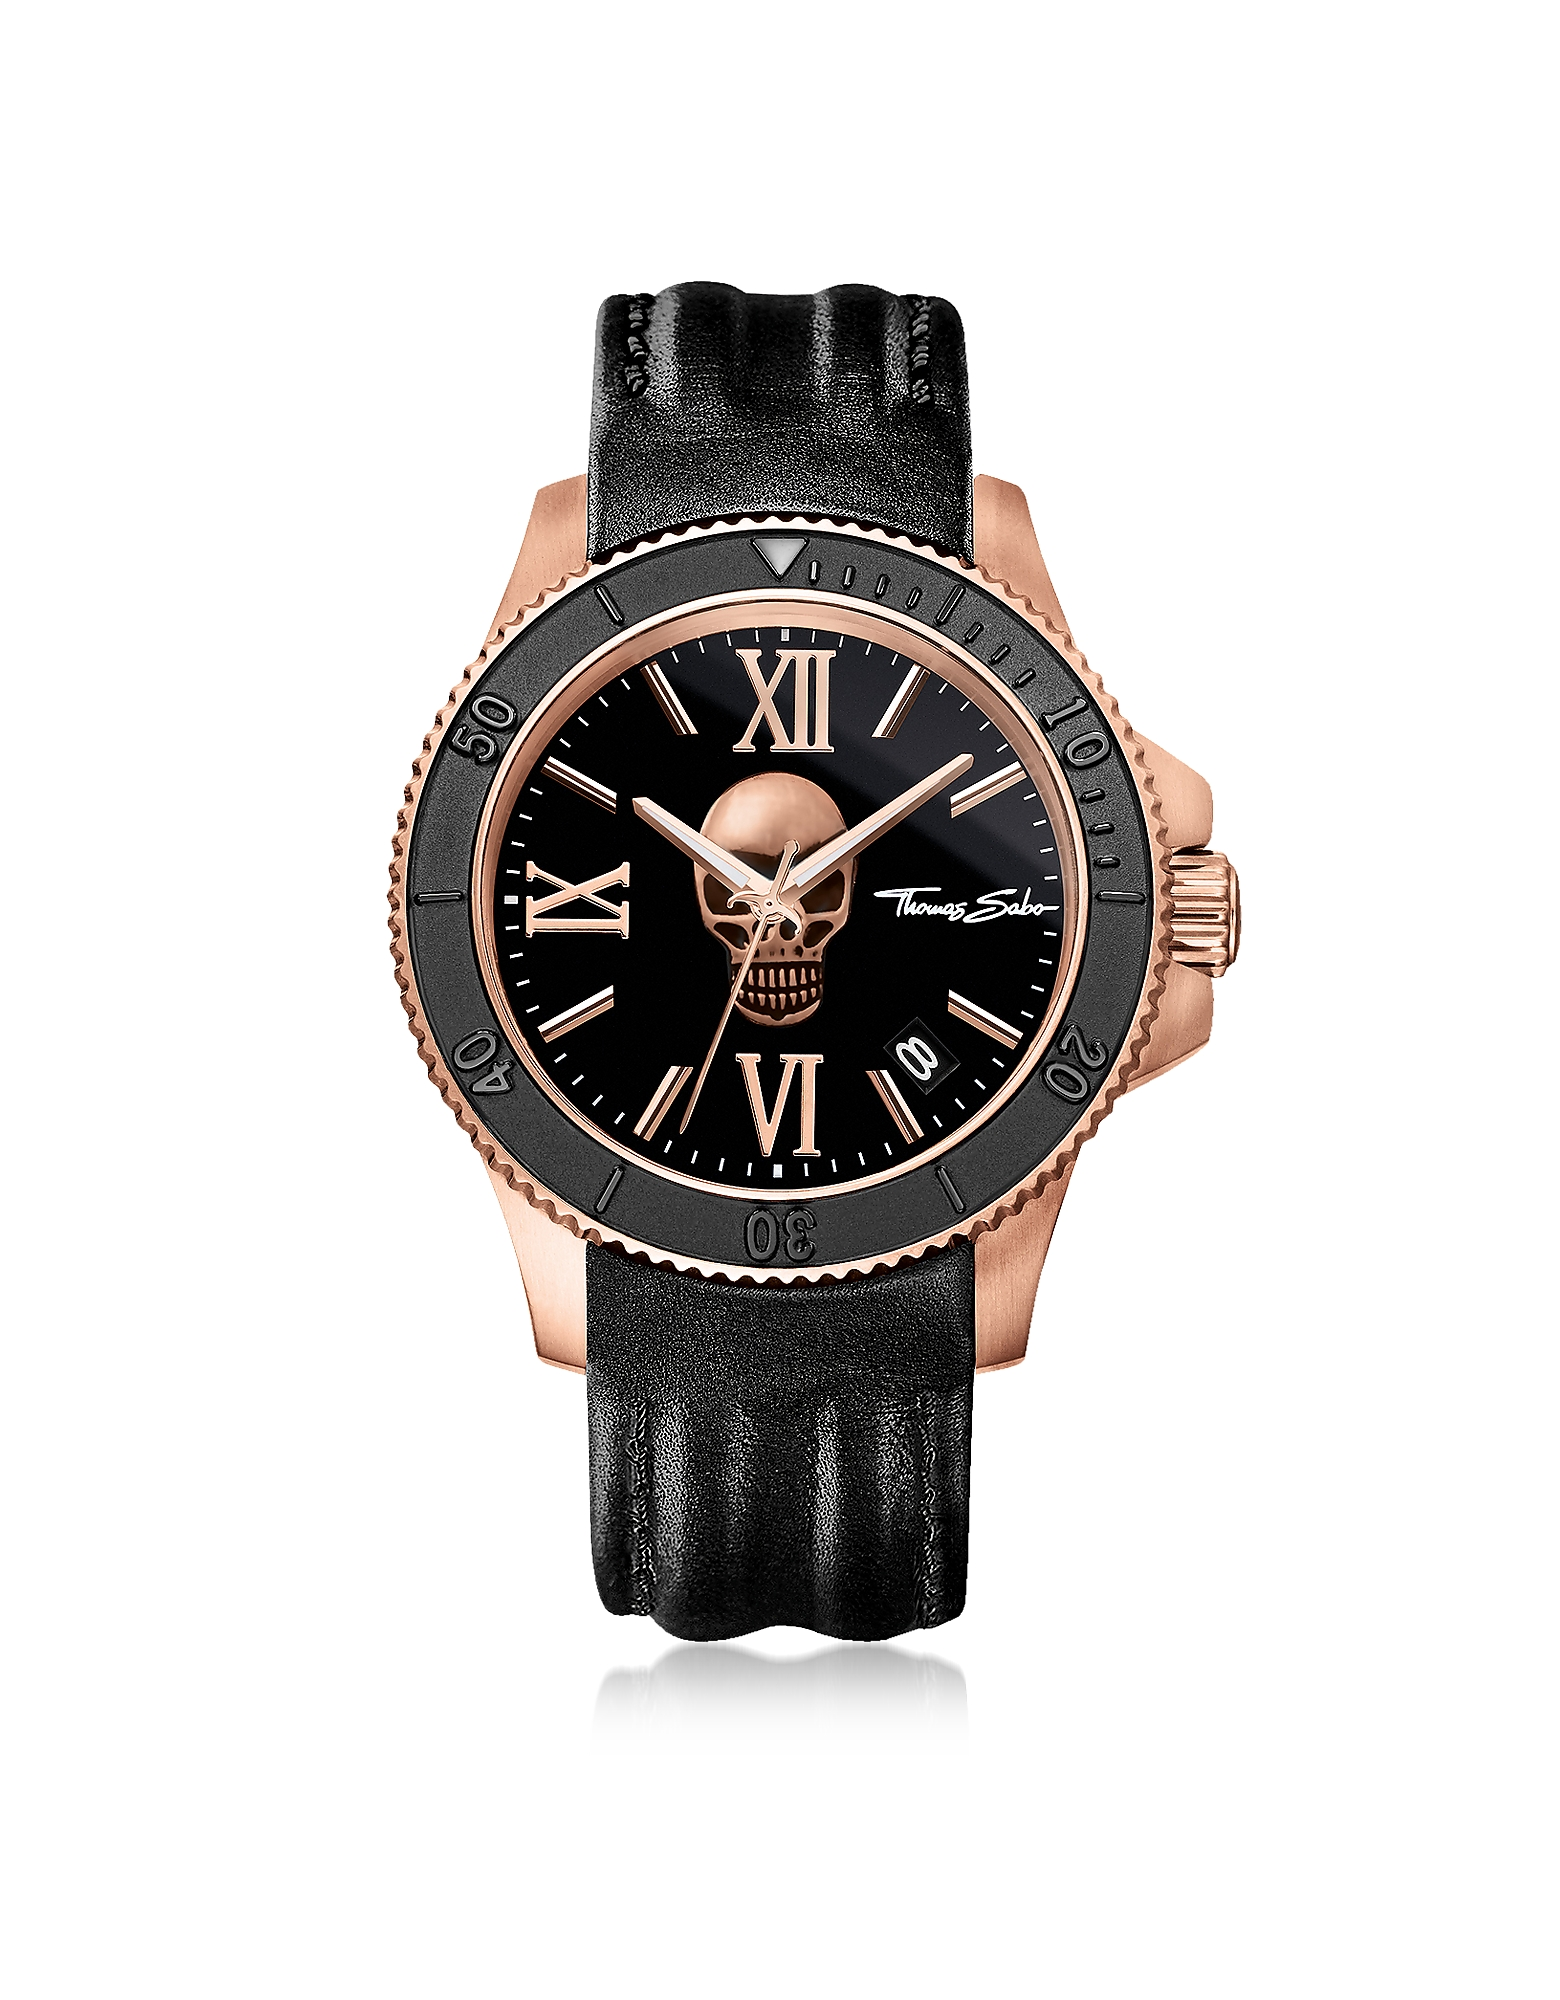 Thomas Sabo Men's Watches, Rebel Icon Rose Gold Stainless Steel Men's Watch w/Black Leather Strap